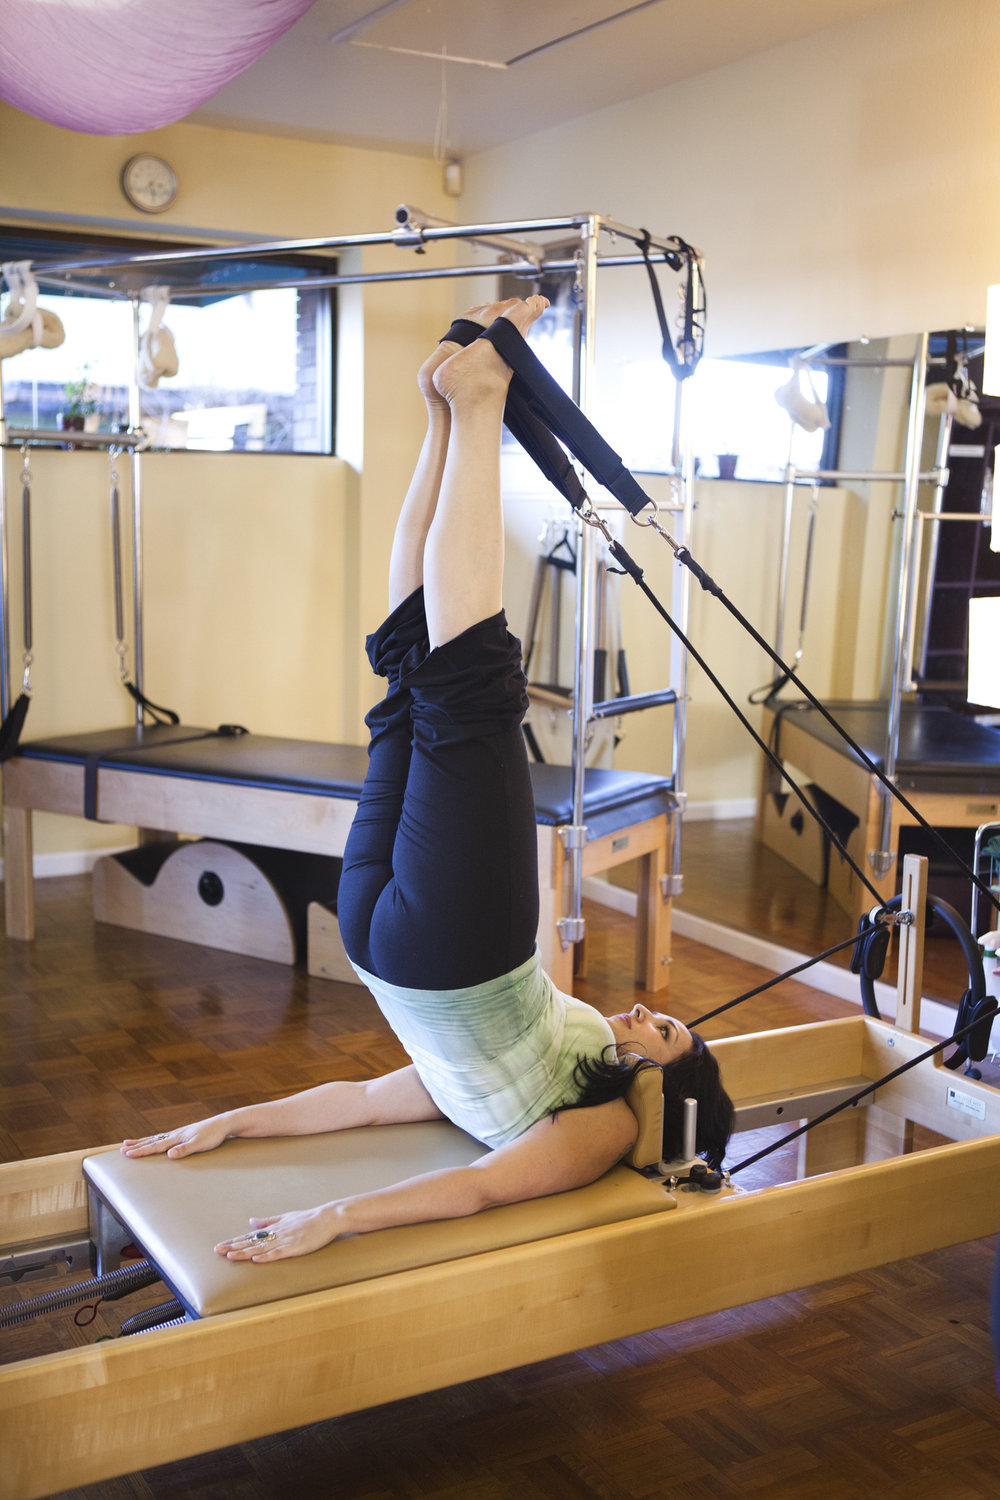 16-pilates-old-location.jpg